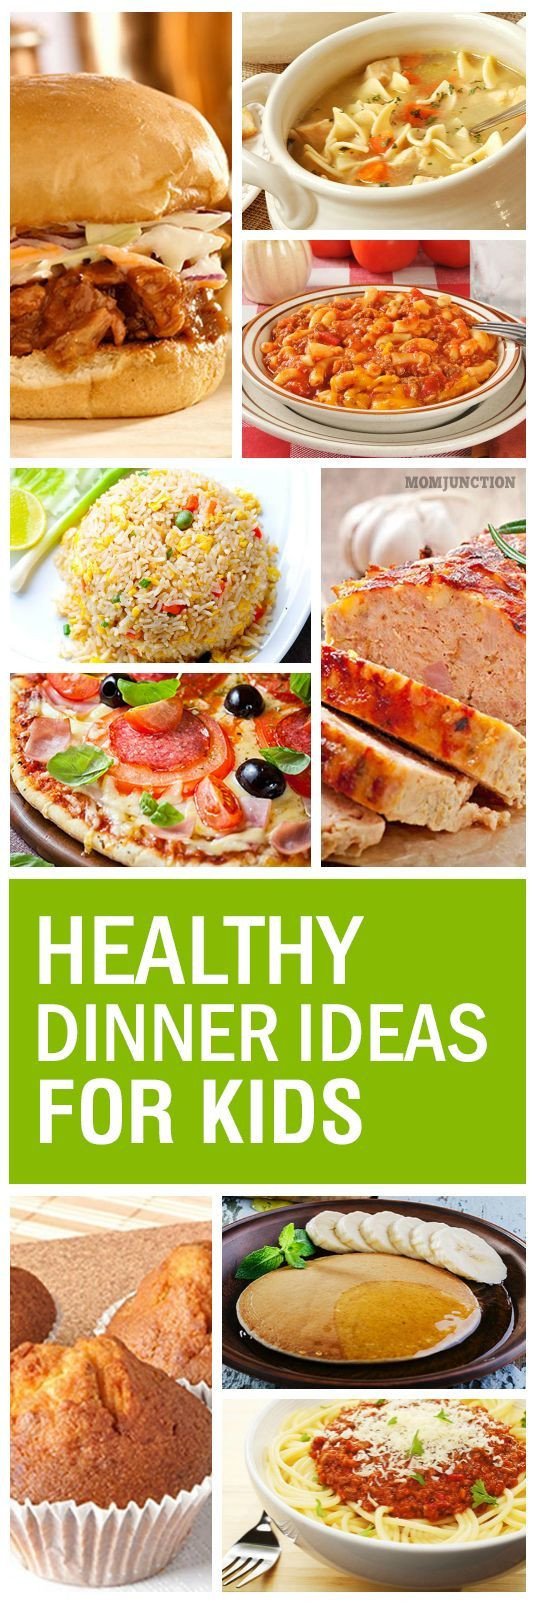 Quick Dinner Ideas For Kids  15 Quick And Yummy Dinner Recipes For Kids